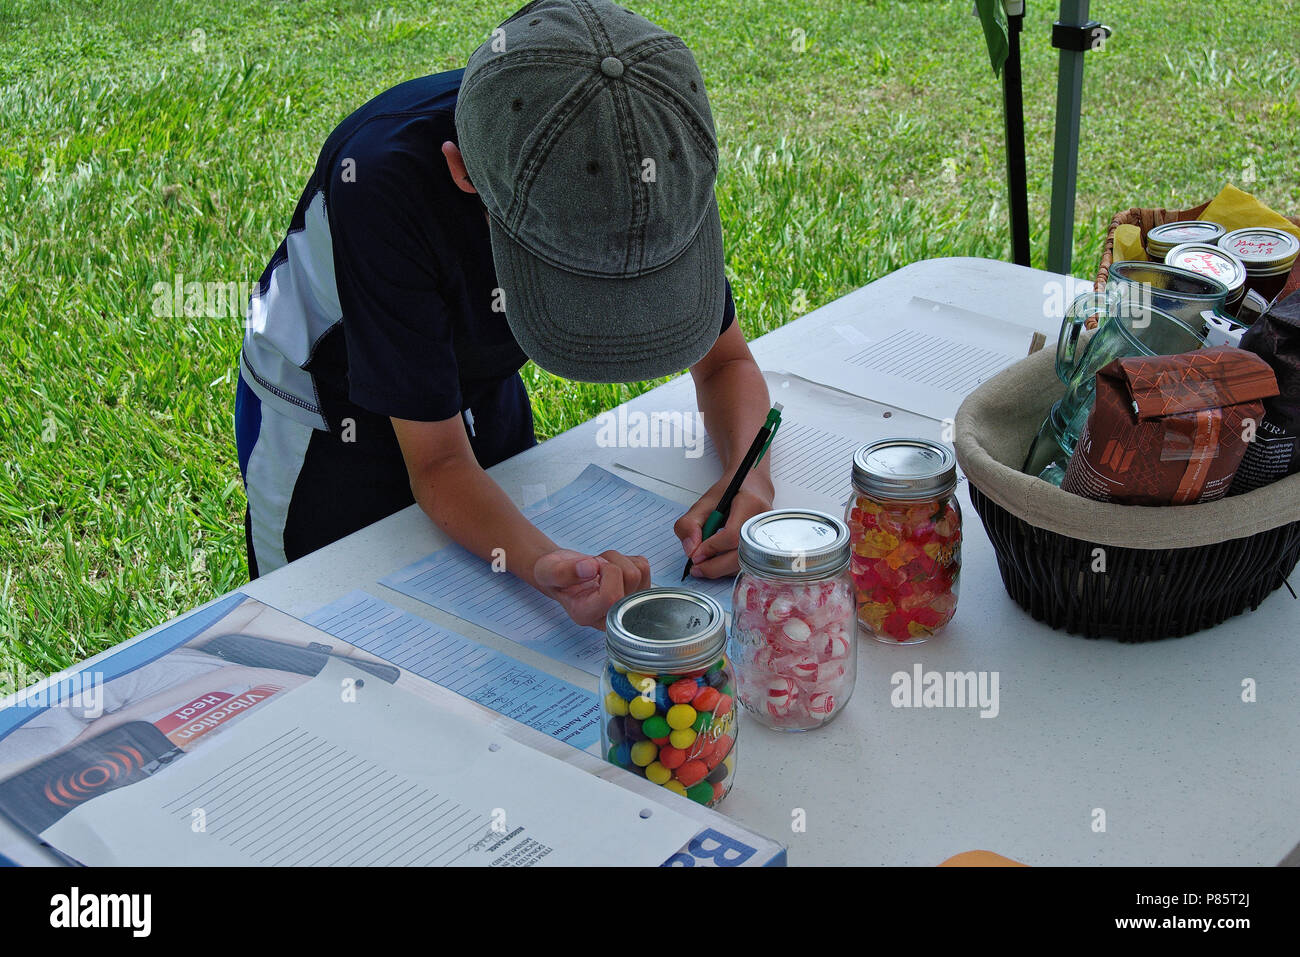 Silent auction table with candy count jars and kids guessing count - Stock Image